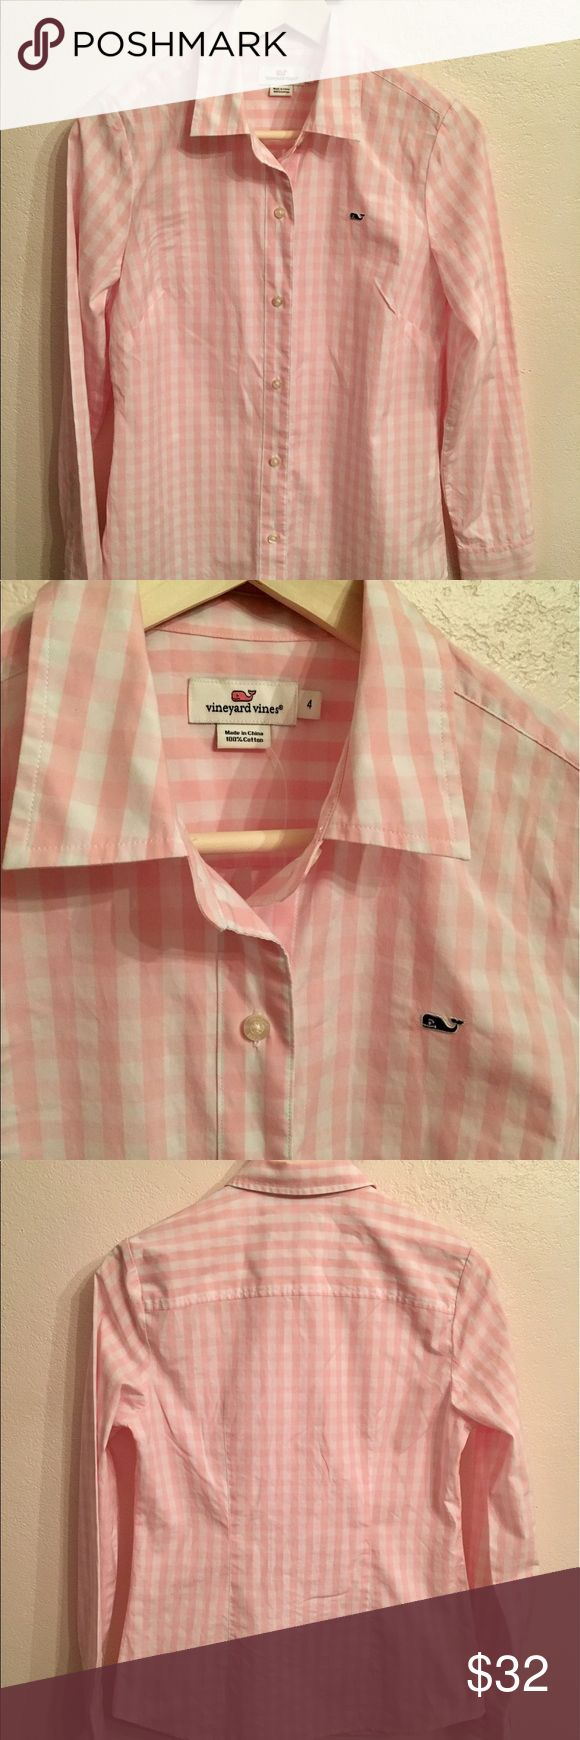 Vineyard Vines women's pink gingham oxford Sz 4 Vineyard vines women's pink gingham oxford. Size 4- long sleeve button down front. Never been worn- extra button attached. Vineyard Vines Tops Button Down Shirts